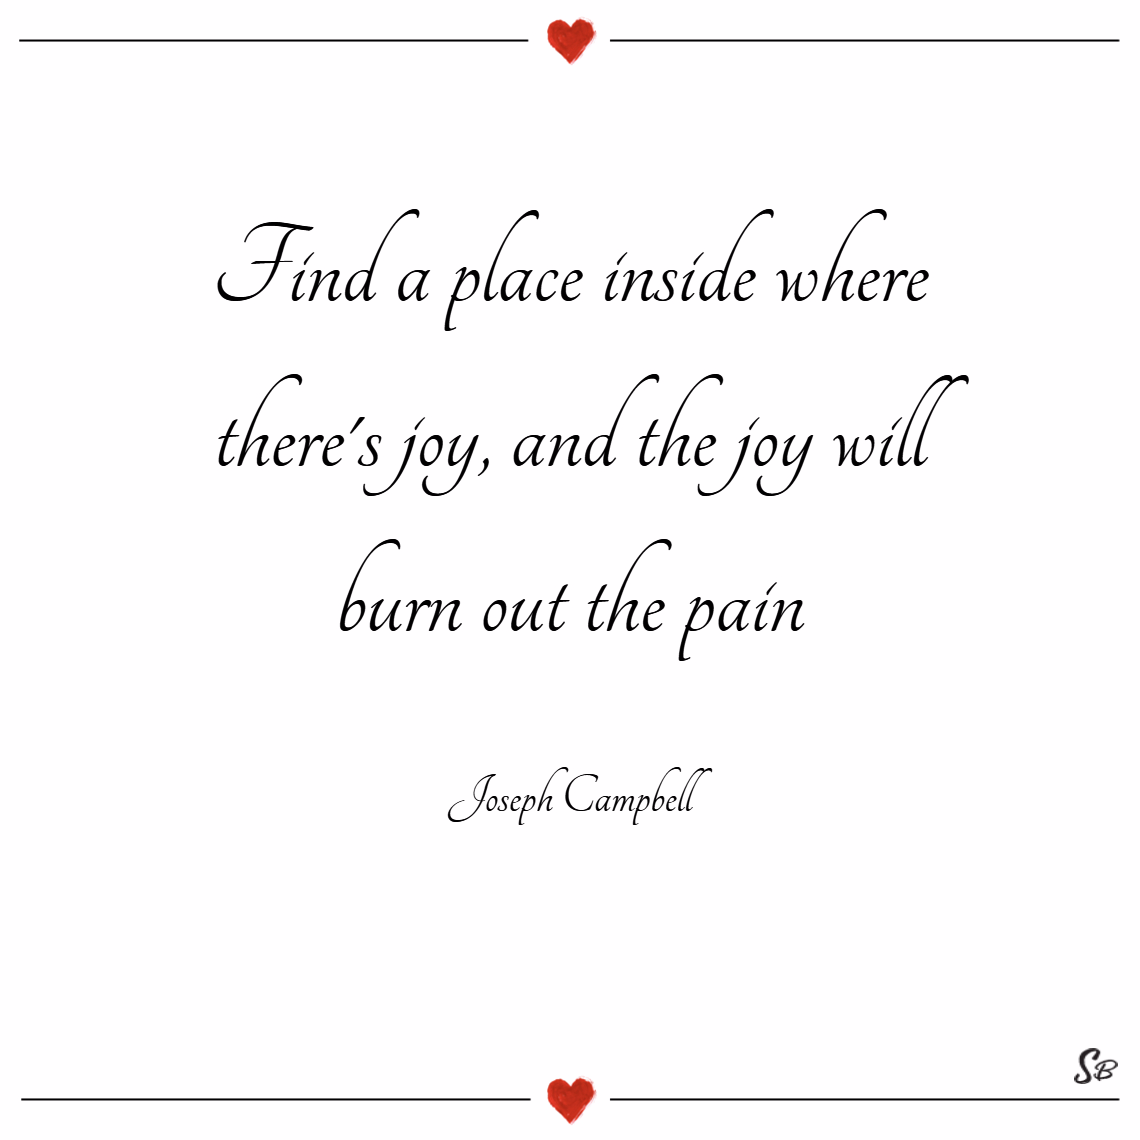 Find a place inside where there's joy, and the joy will burn out the pain. – joseph campbell joy quotes